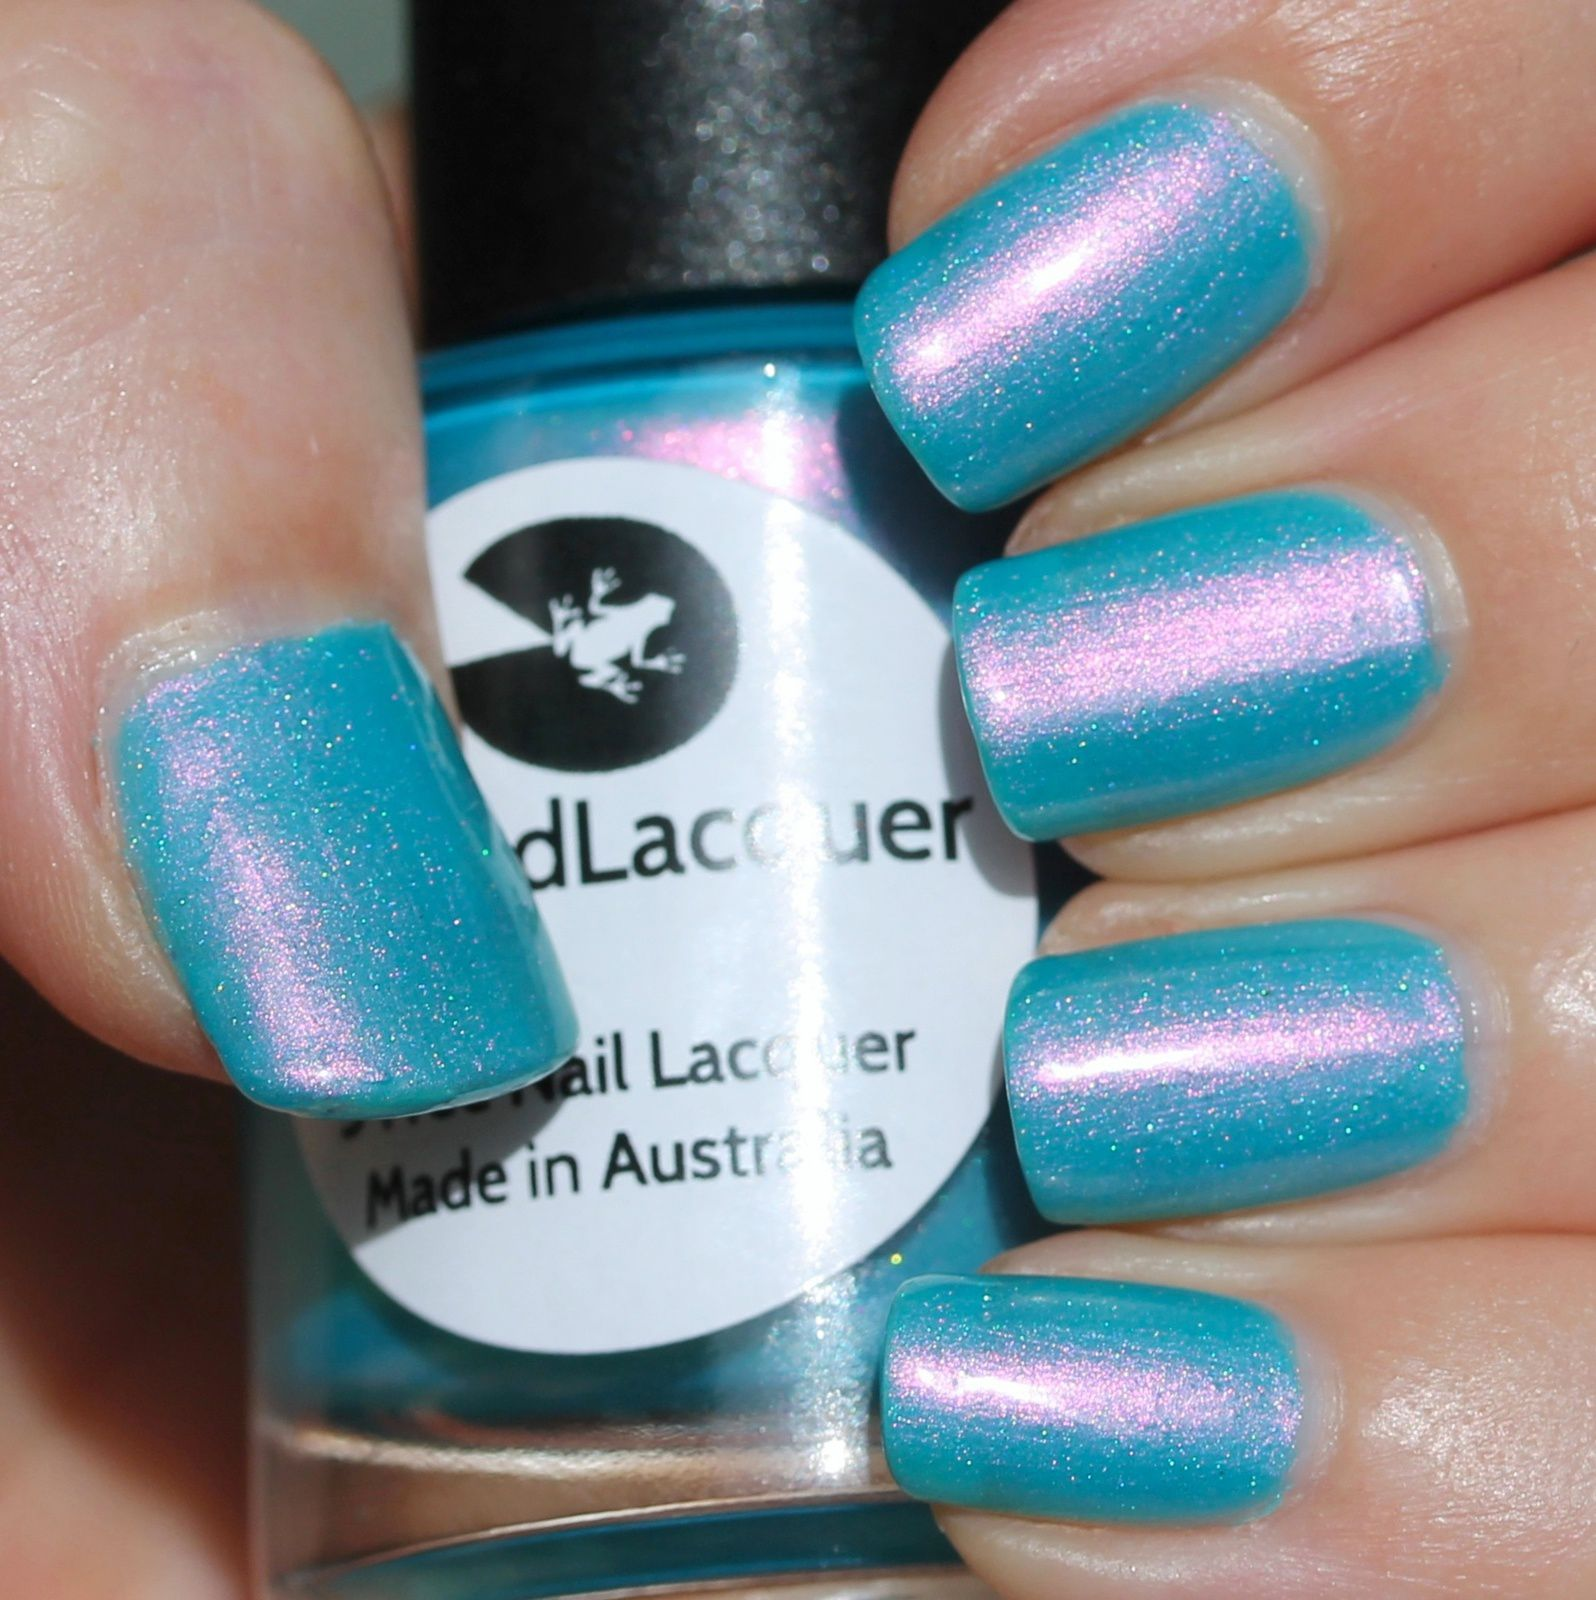 Essie Protein Base Coat / Lilypad Lacquer Unicorn Lagoon / Lilypad Lacquer Crystal Clear Top Coat